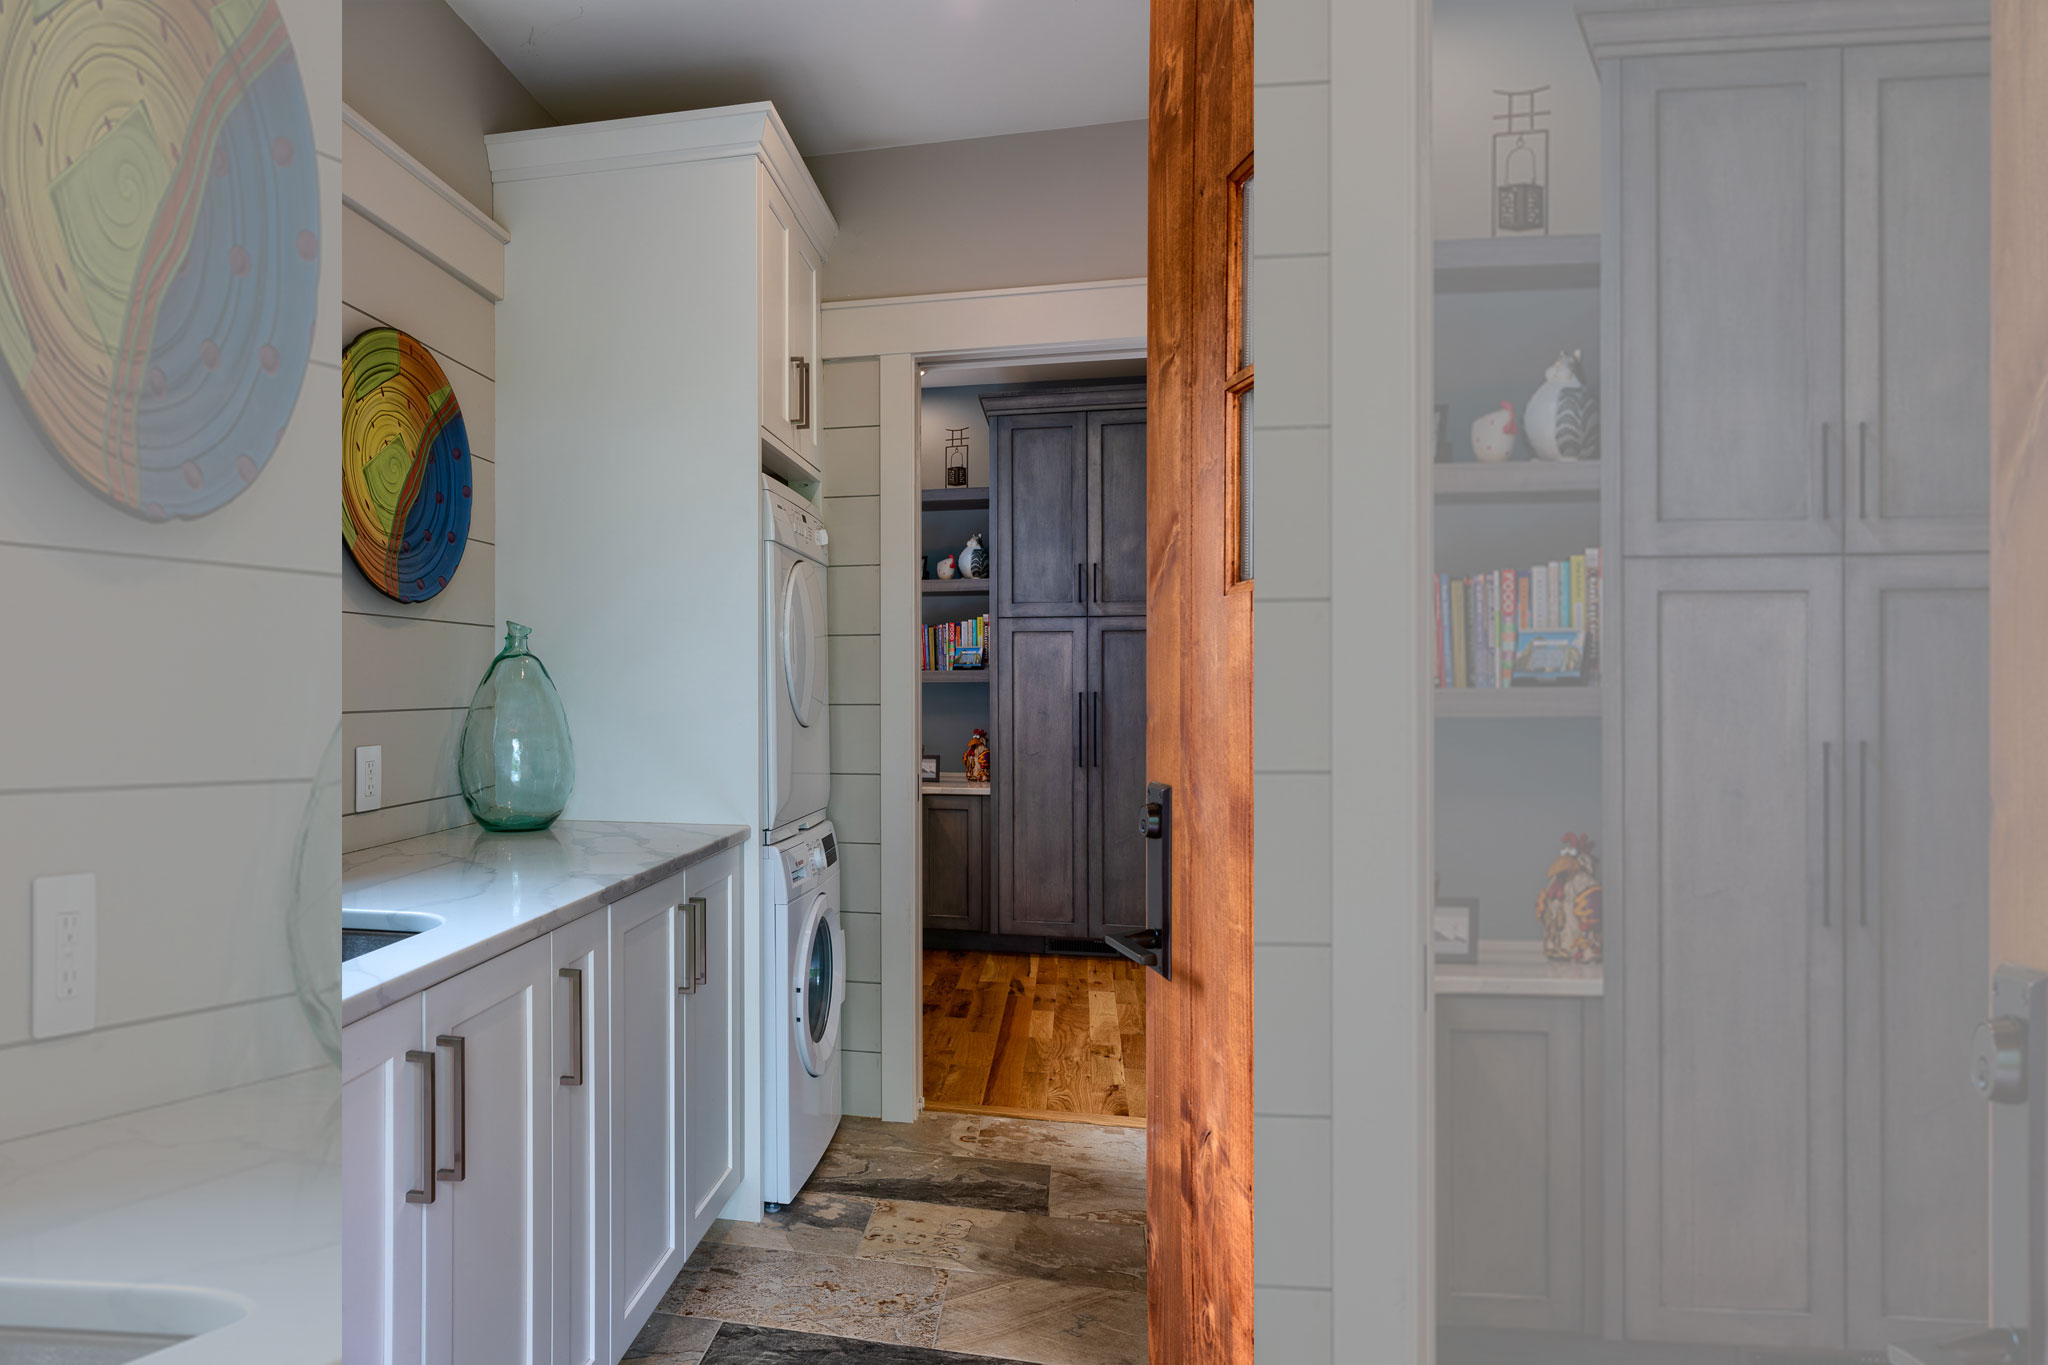 Mudroom in mountain home with laundry room